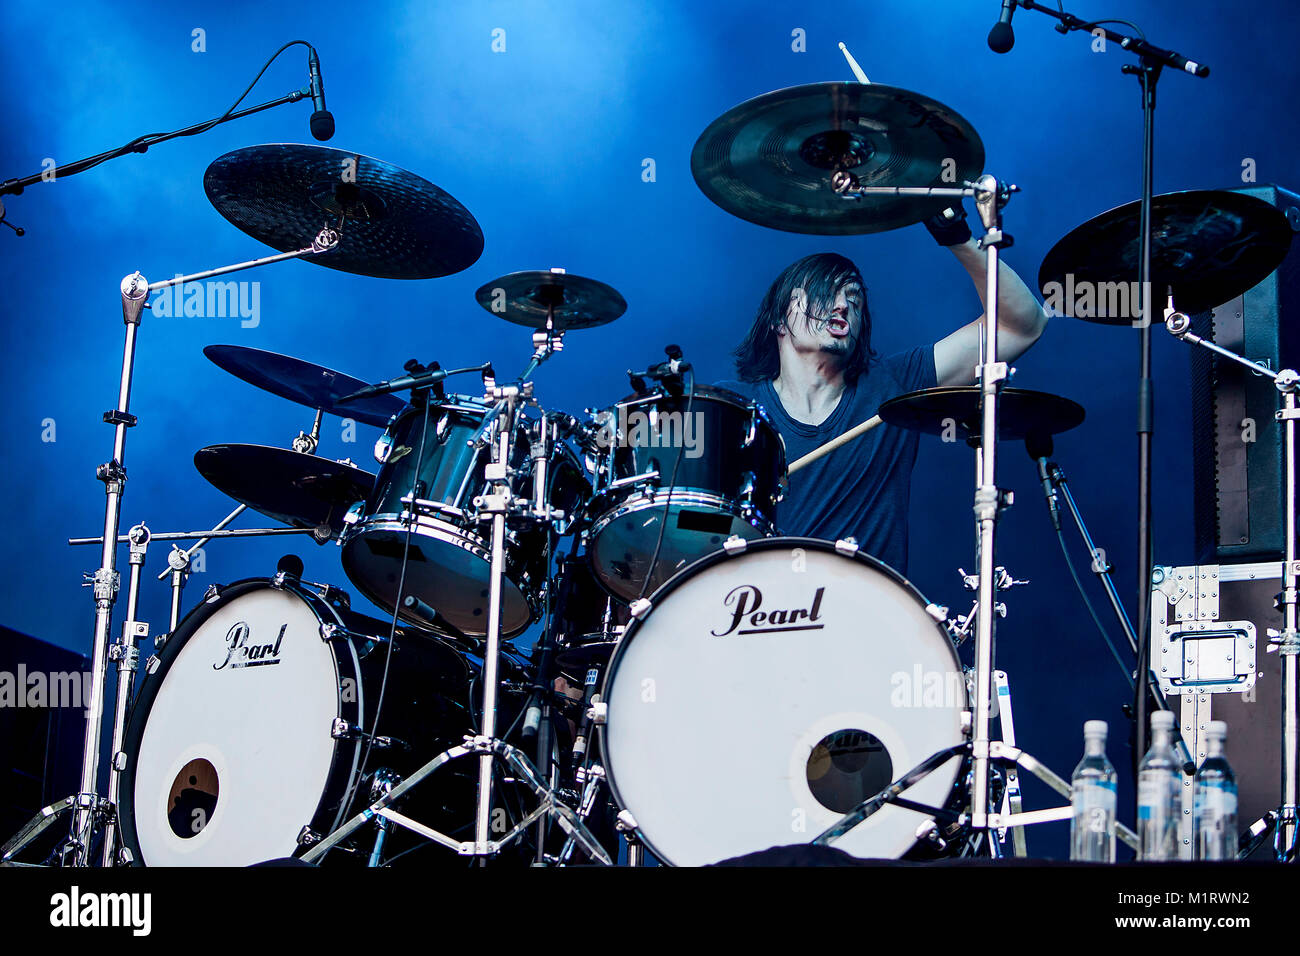 The French death metal band Gojira performs a live concert at Plenen in Bergen. Here drummer Mario Duplantier is - Stock Image